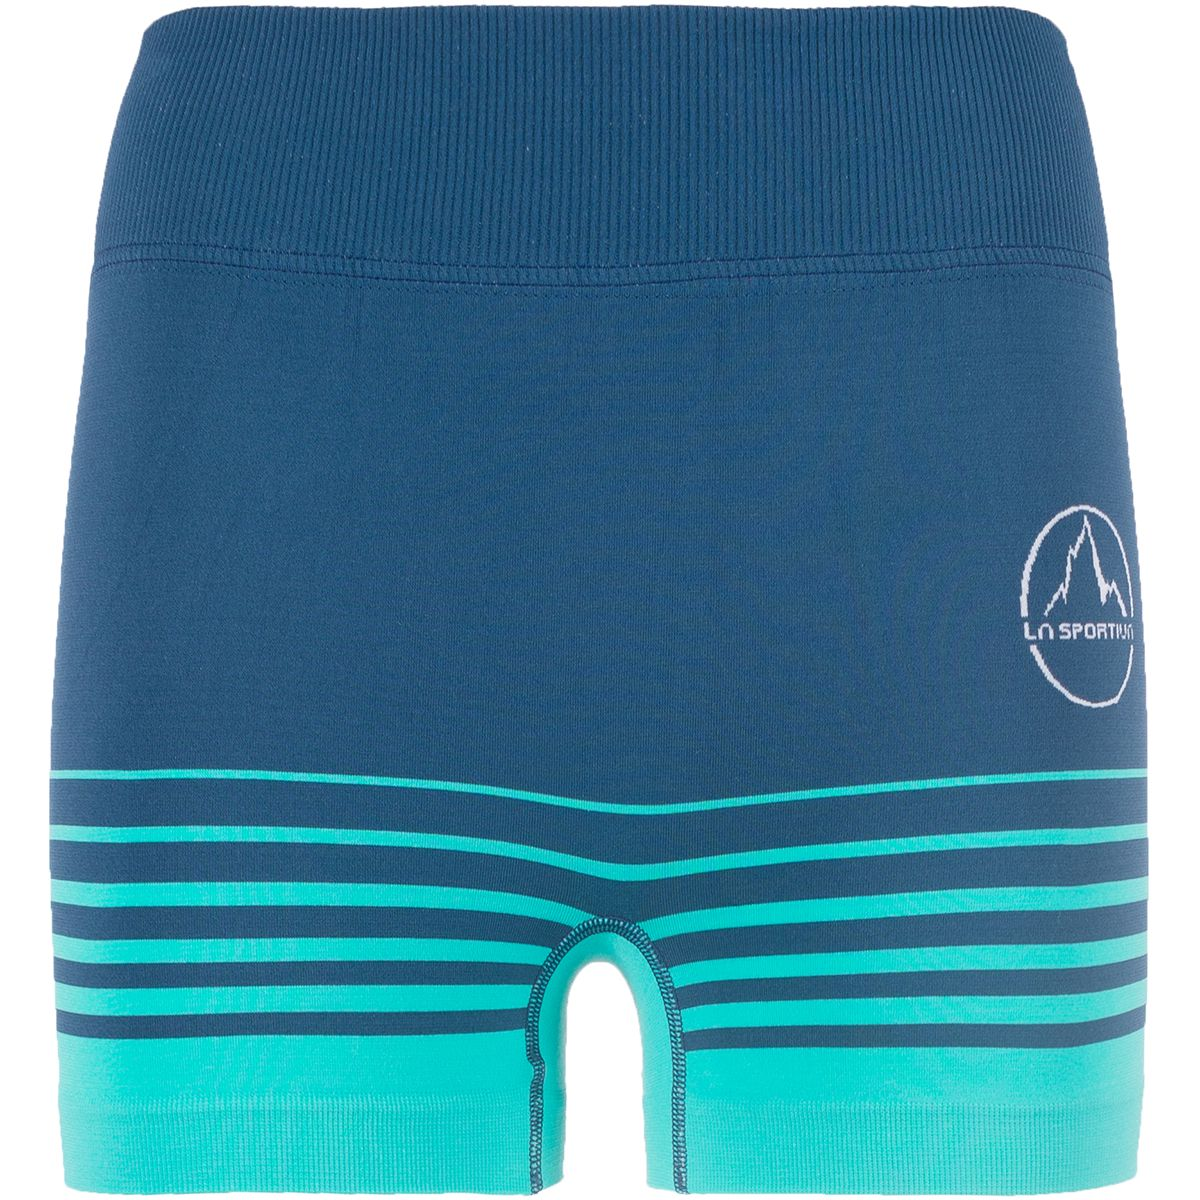 La Sportiva Damen Podium Tight Shorts (Größe L, Blau) | Laufhosen > Damen